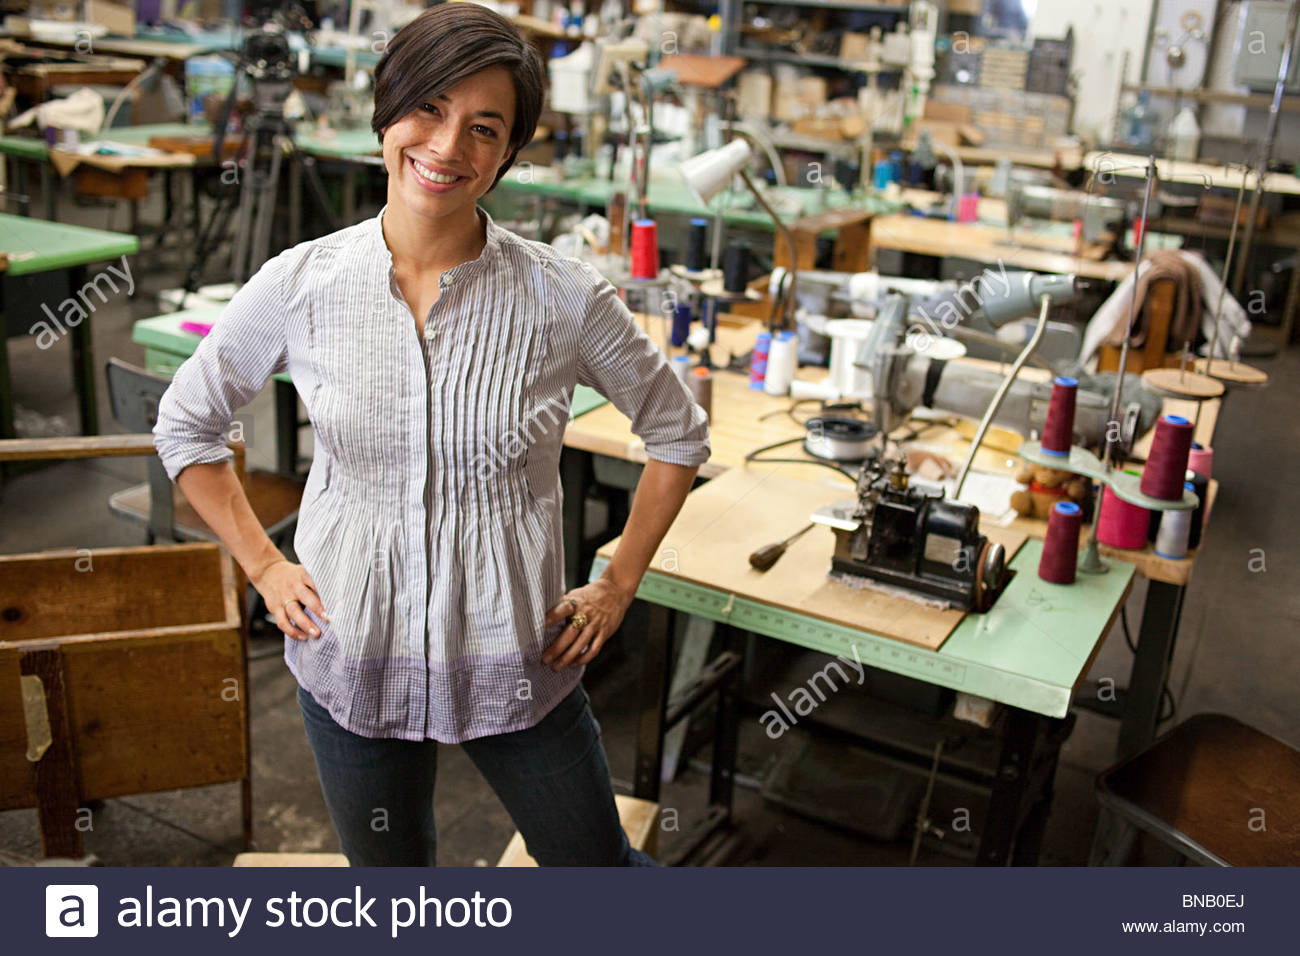 Seamstress in clothing factory - Stock Image